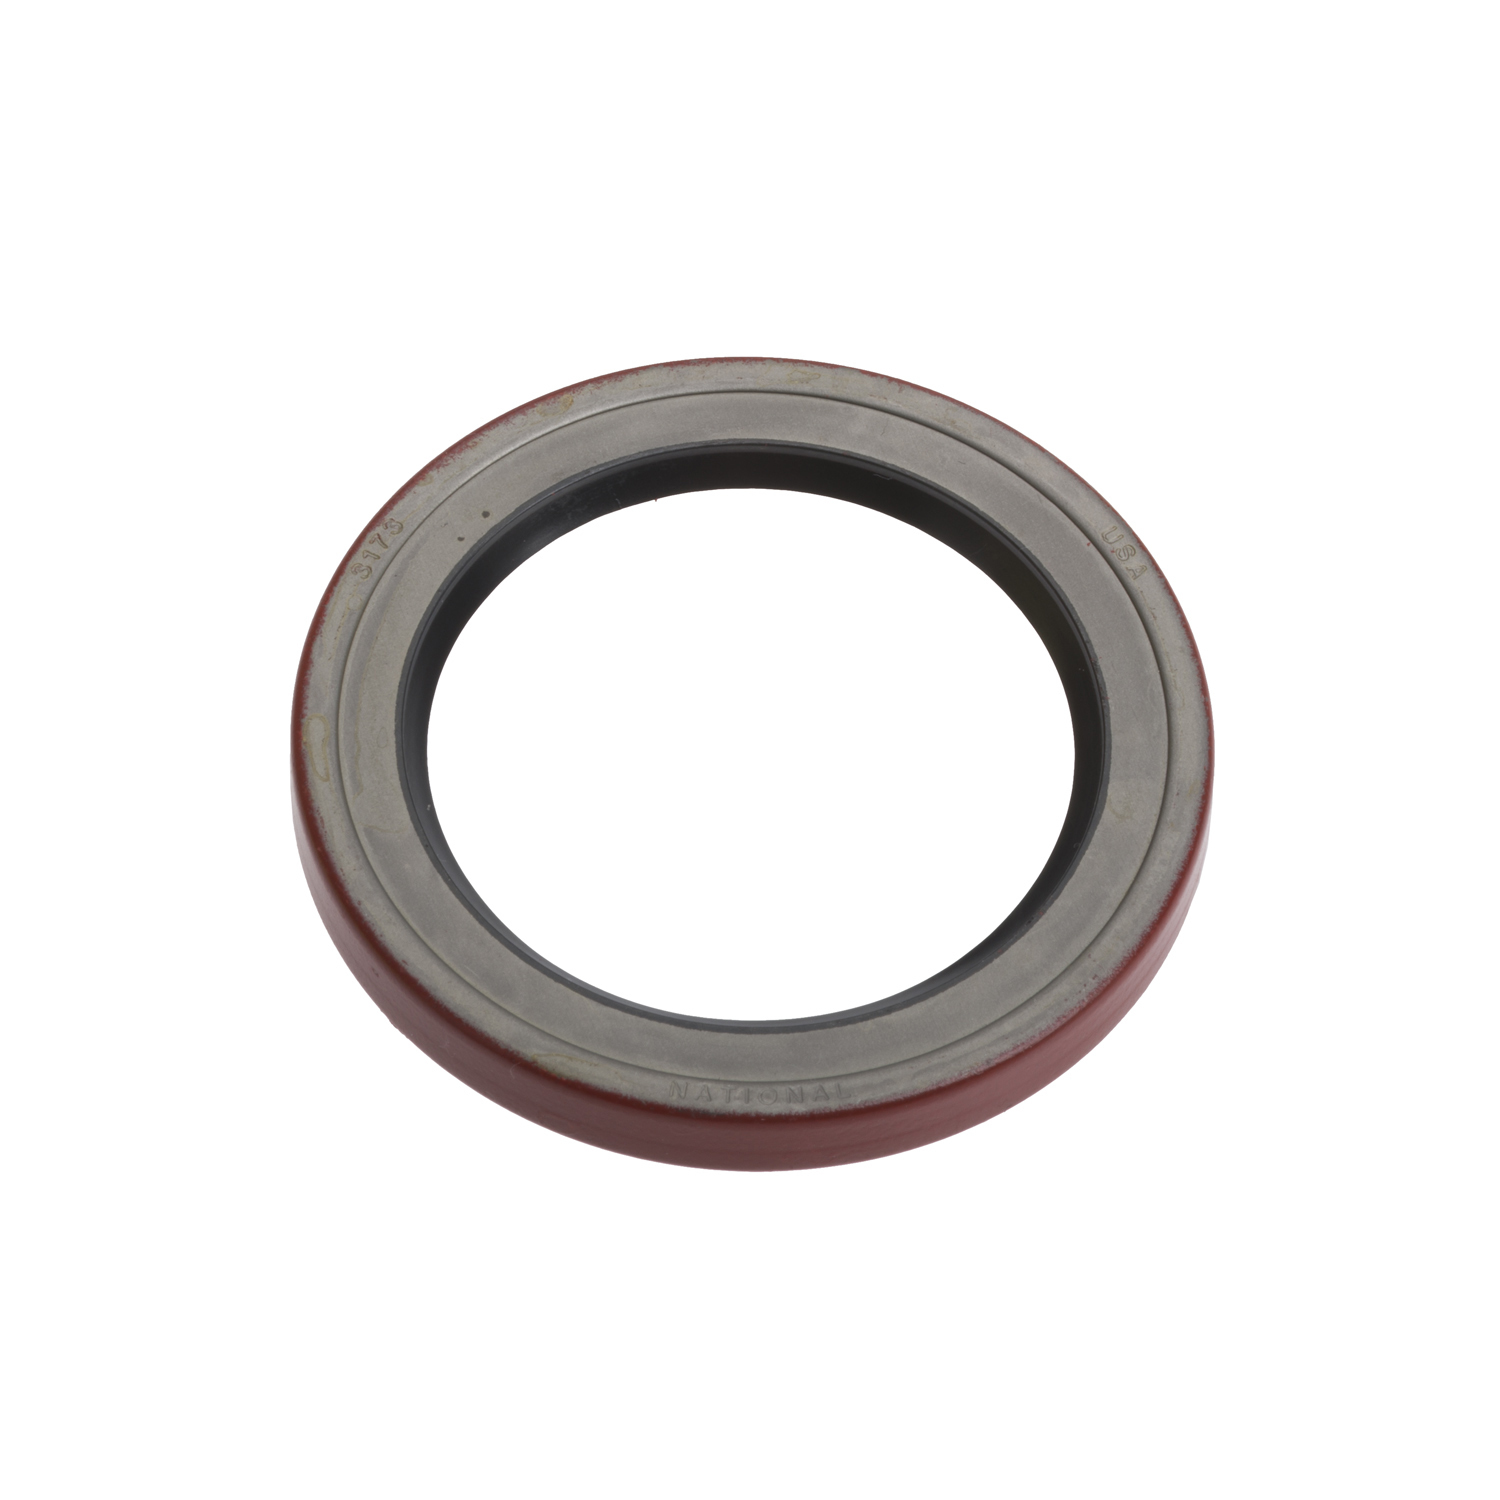 Power Take Off (PTO) Input Shaft Seal